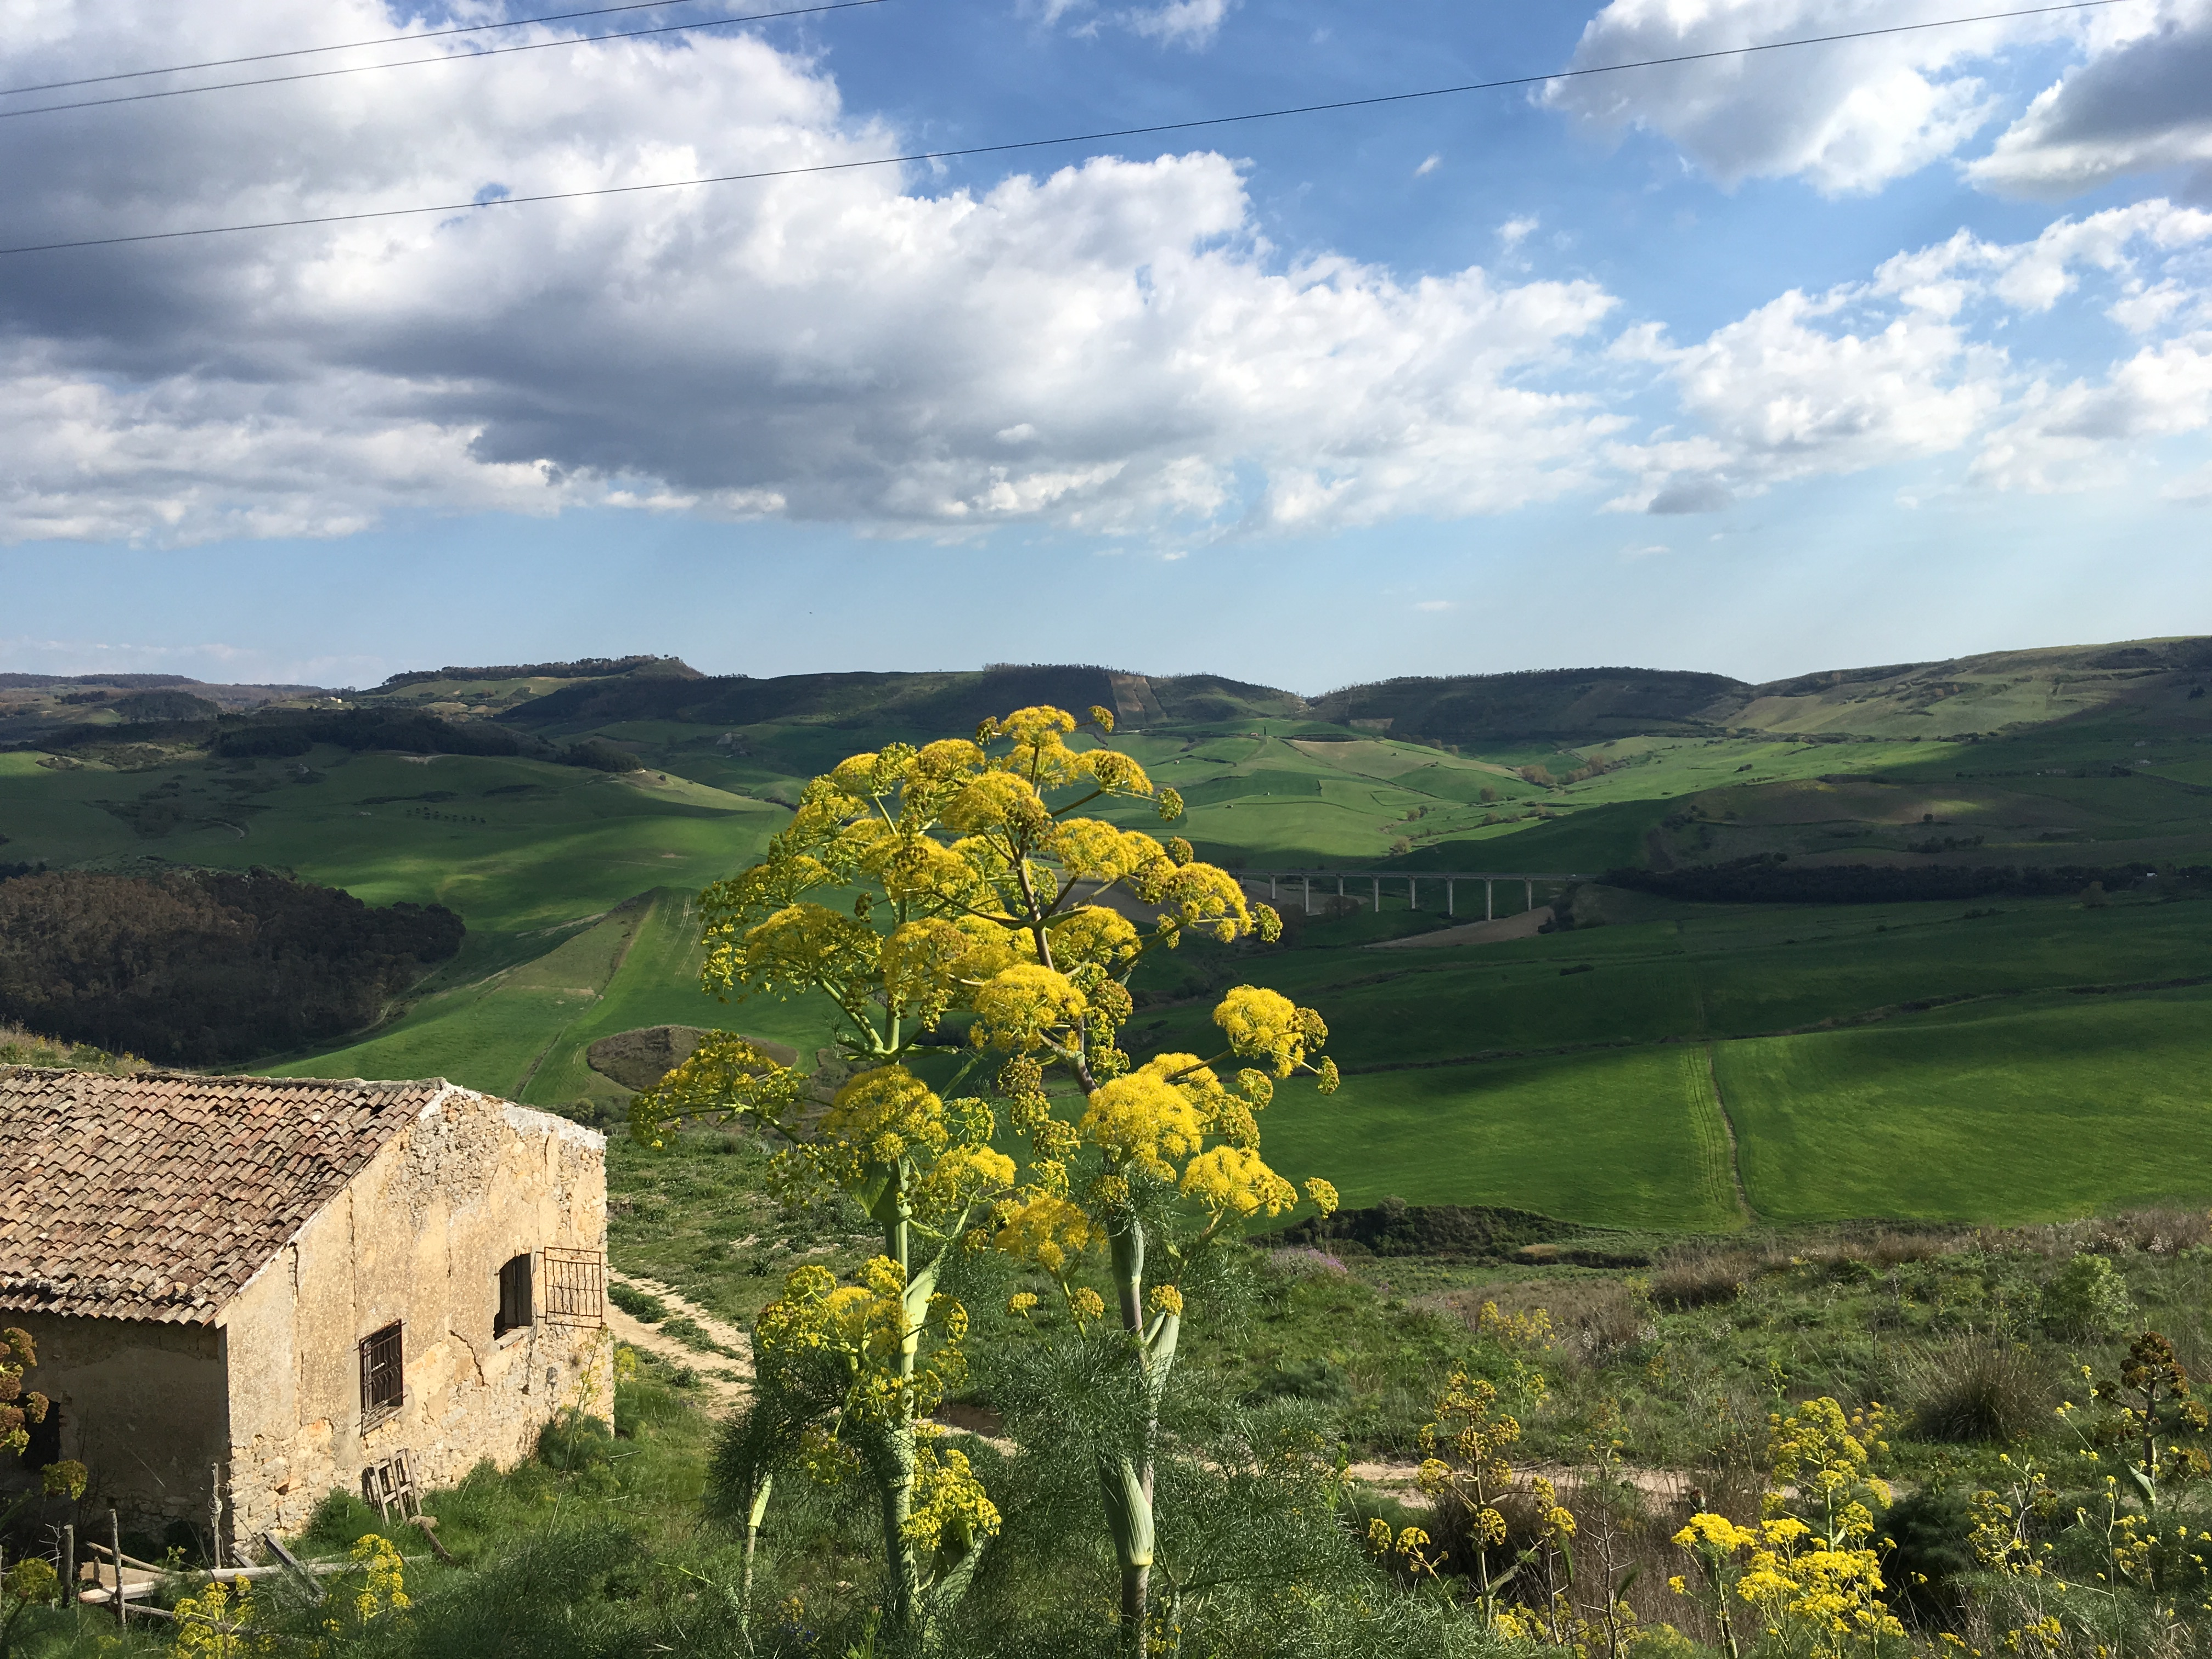 Wild fennel overlooking the wheat fields of central Sicily